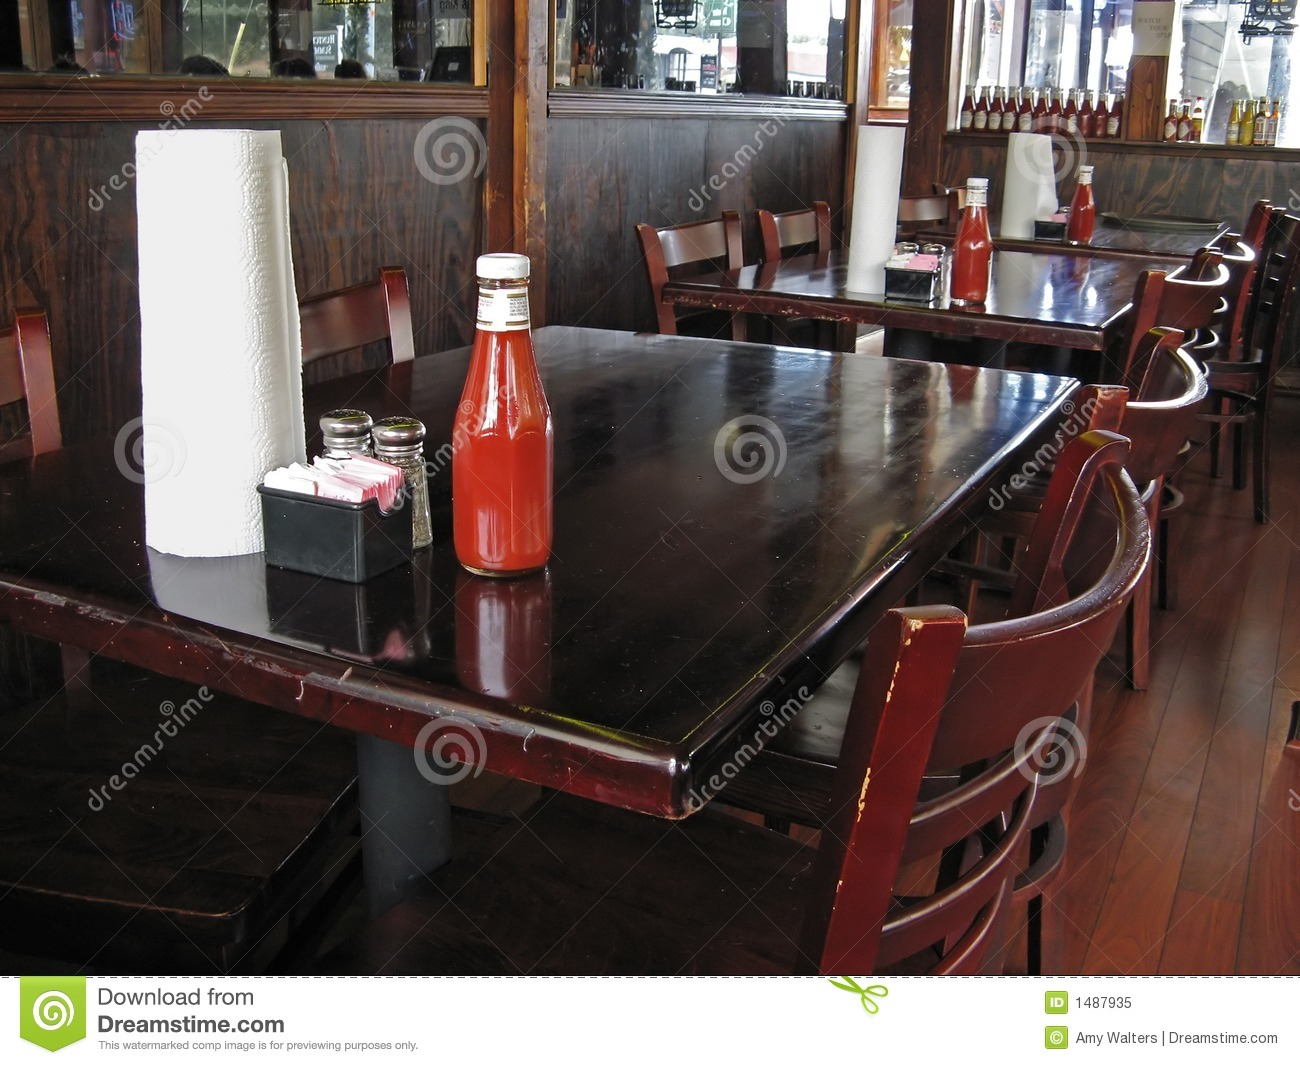 restaurant table and chairs stock image image of spoon chair 1487935